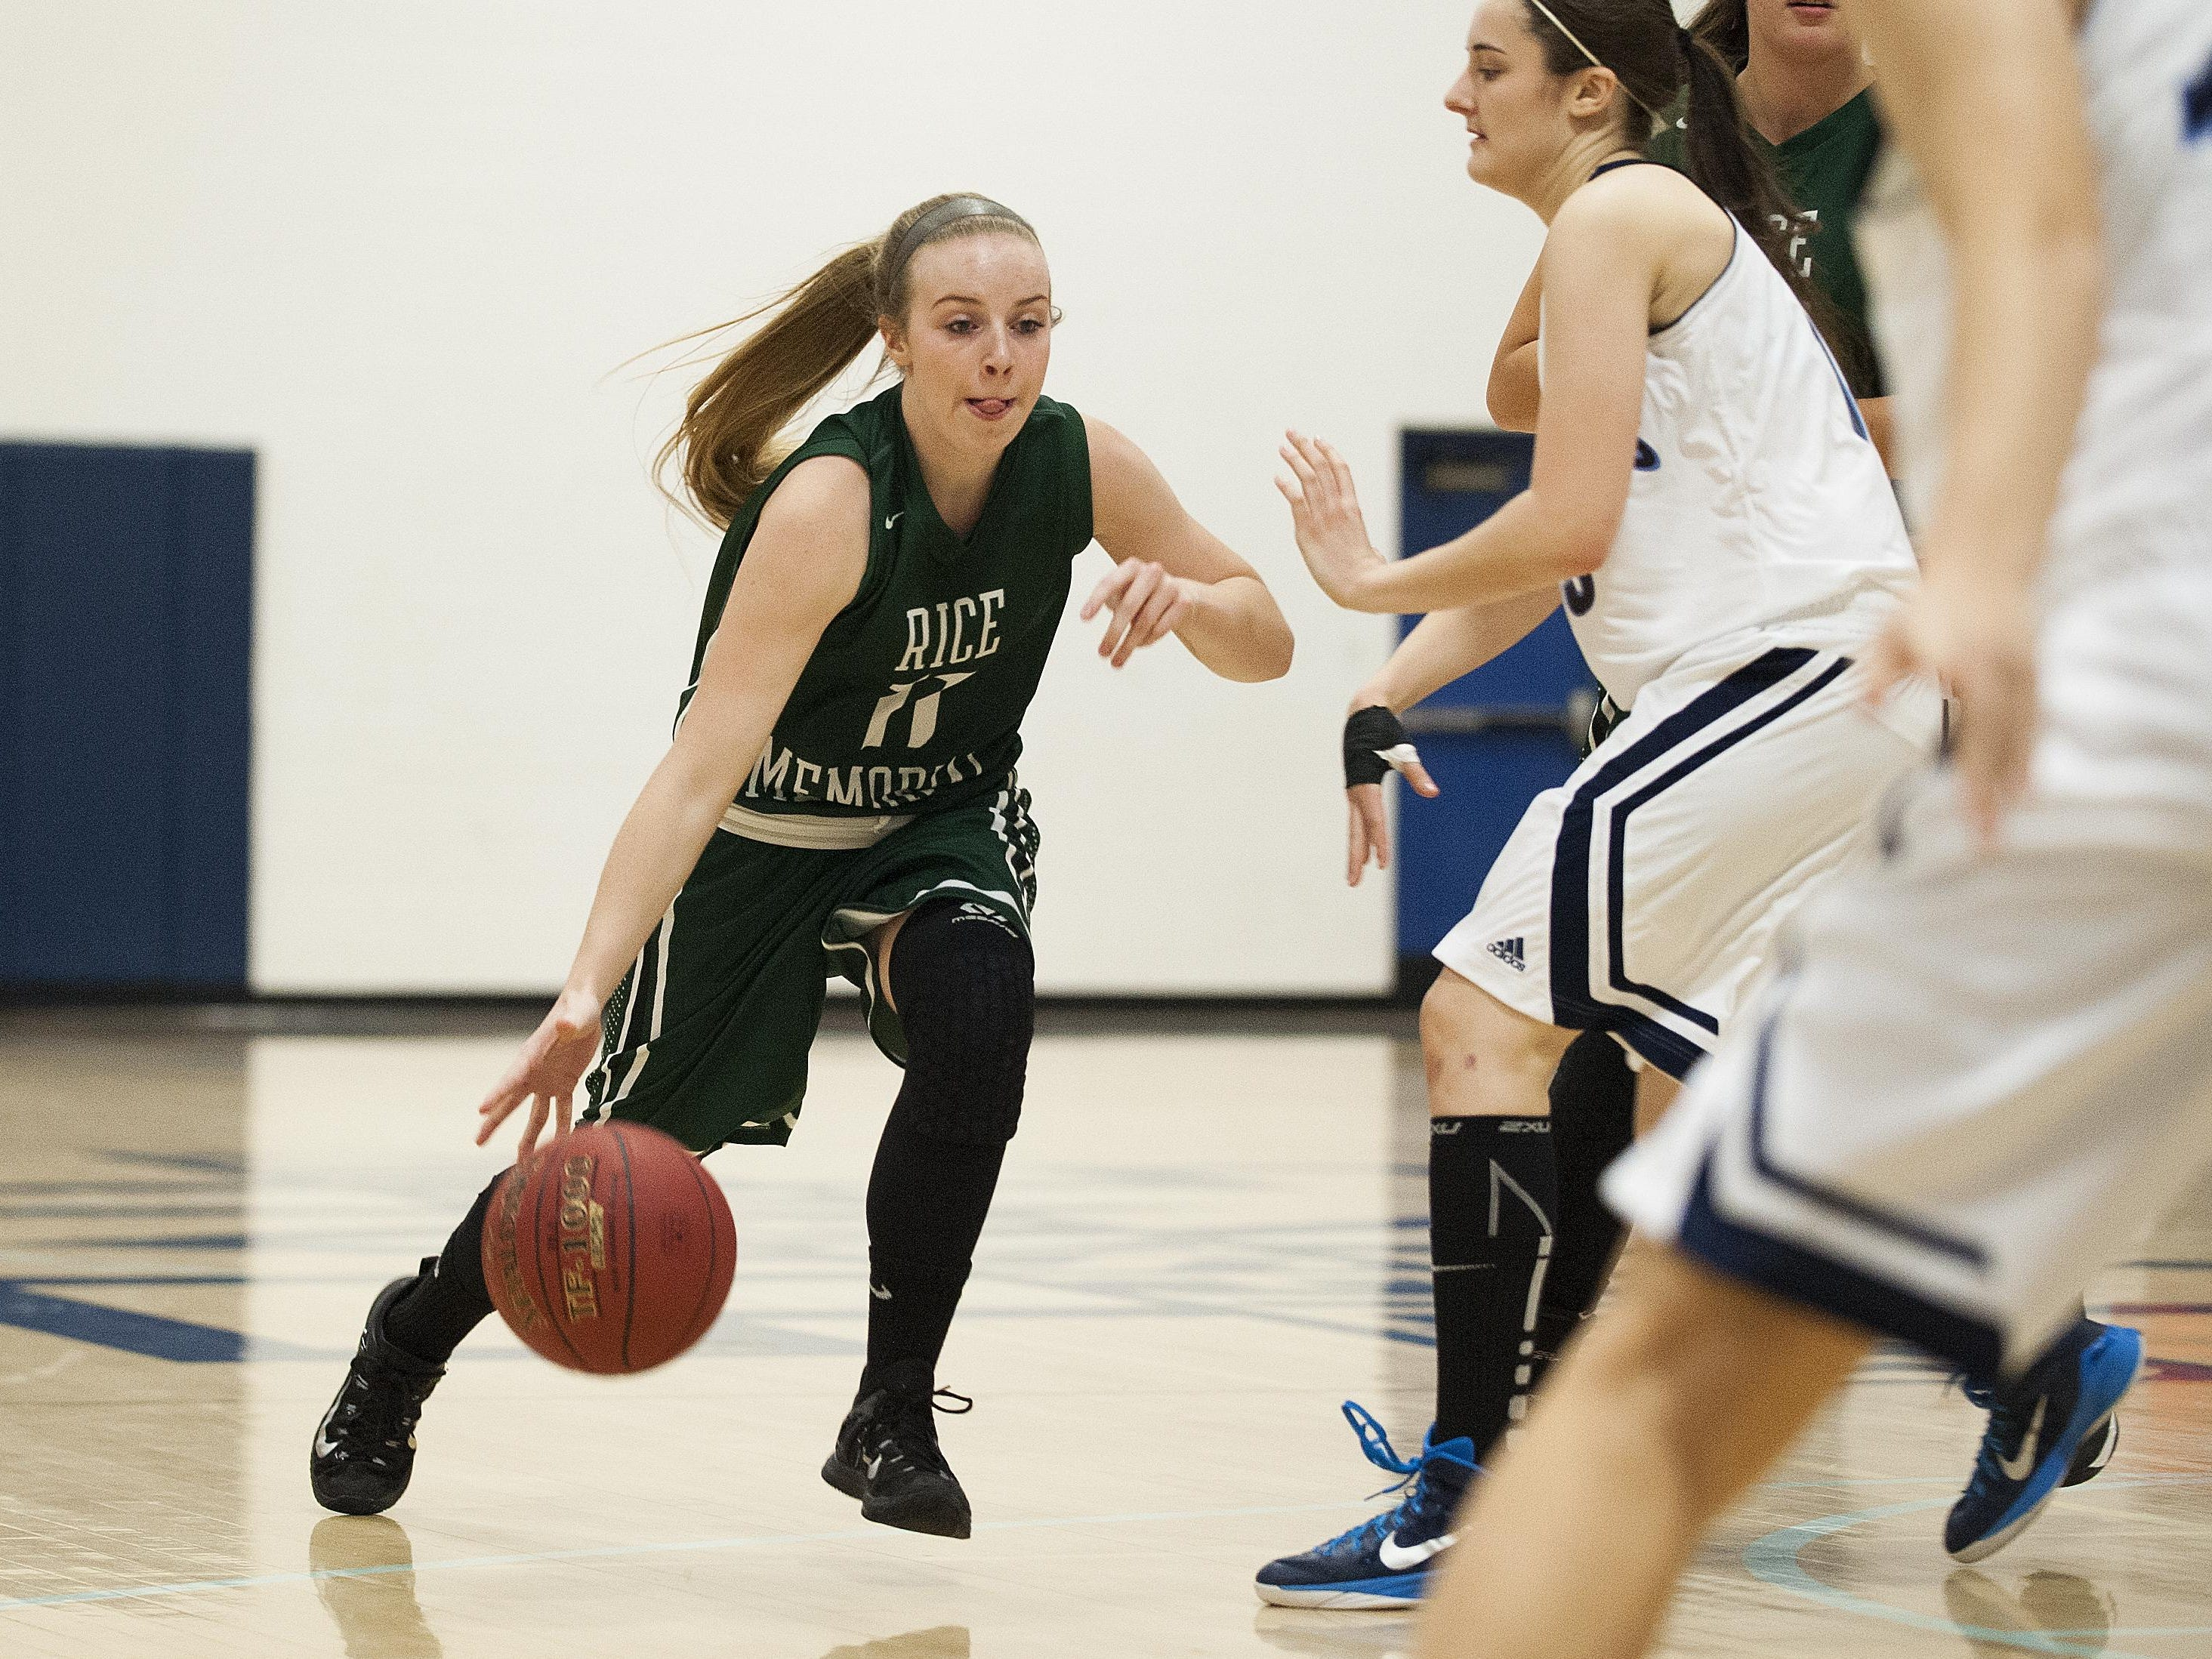 Rice guard Jordan Lawrence (11) drives to the hoop during the girls basketball game between the Rice Green knights and the Mount Mansfield Cougars at MMU High School on Friday night December 4, 2015 in Jericho.